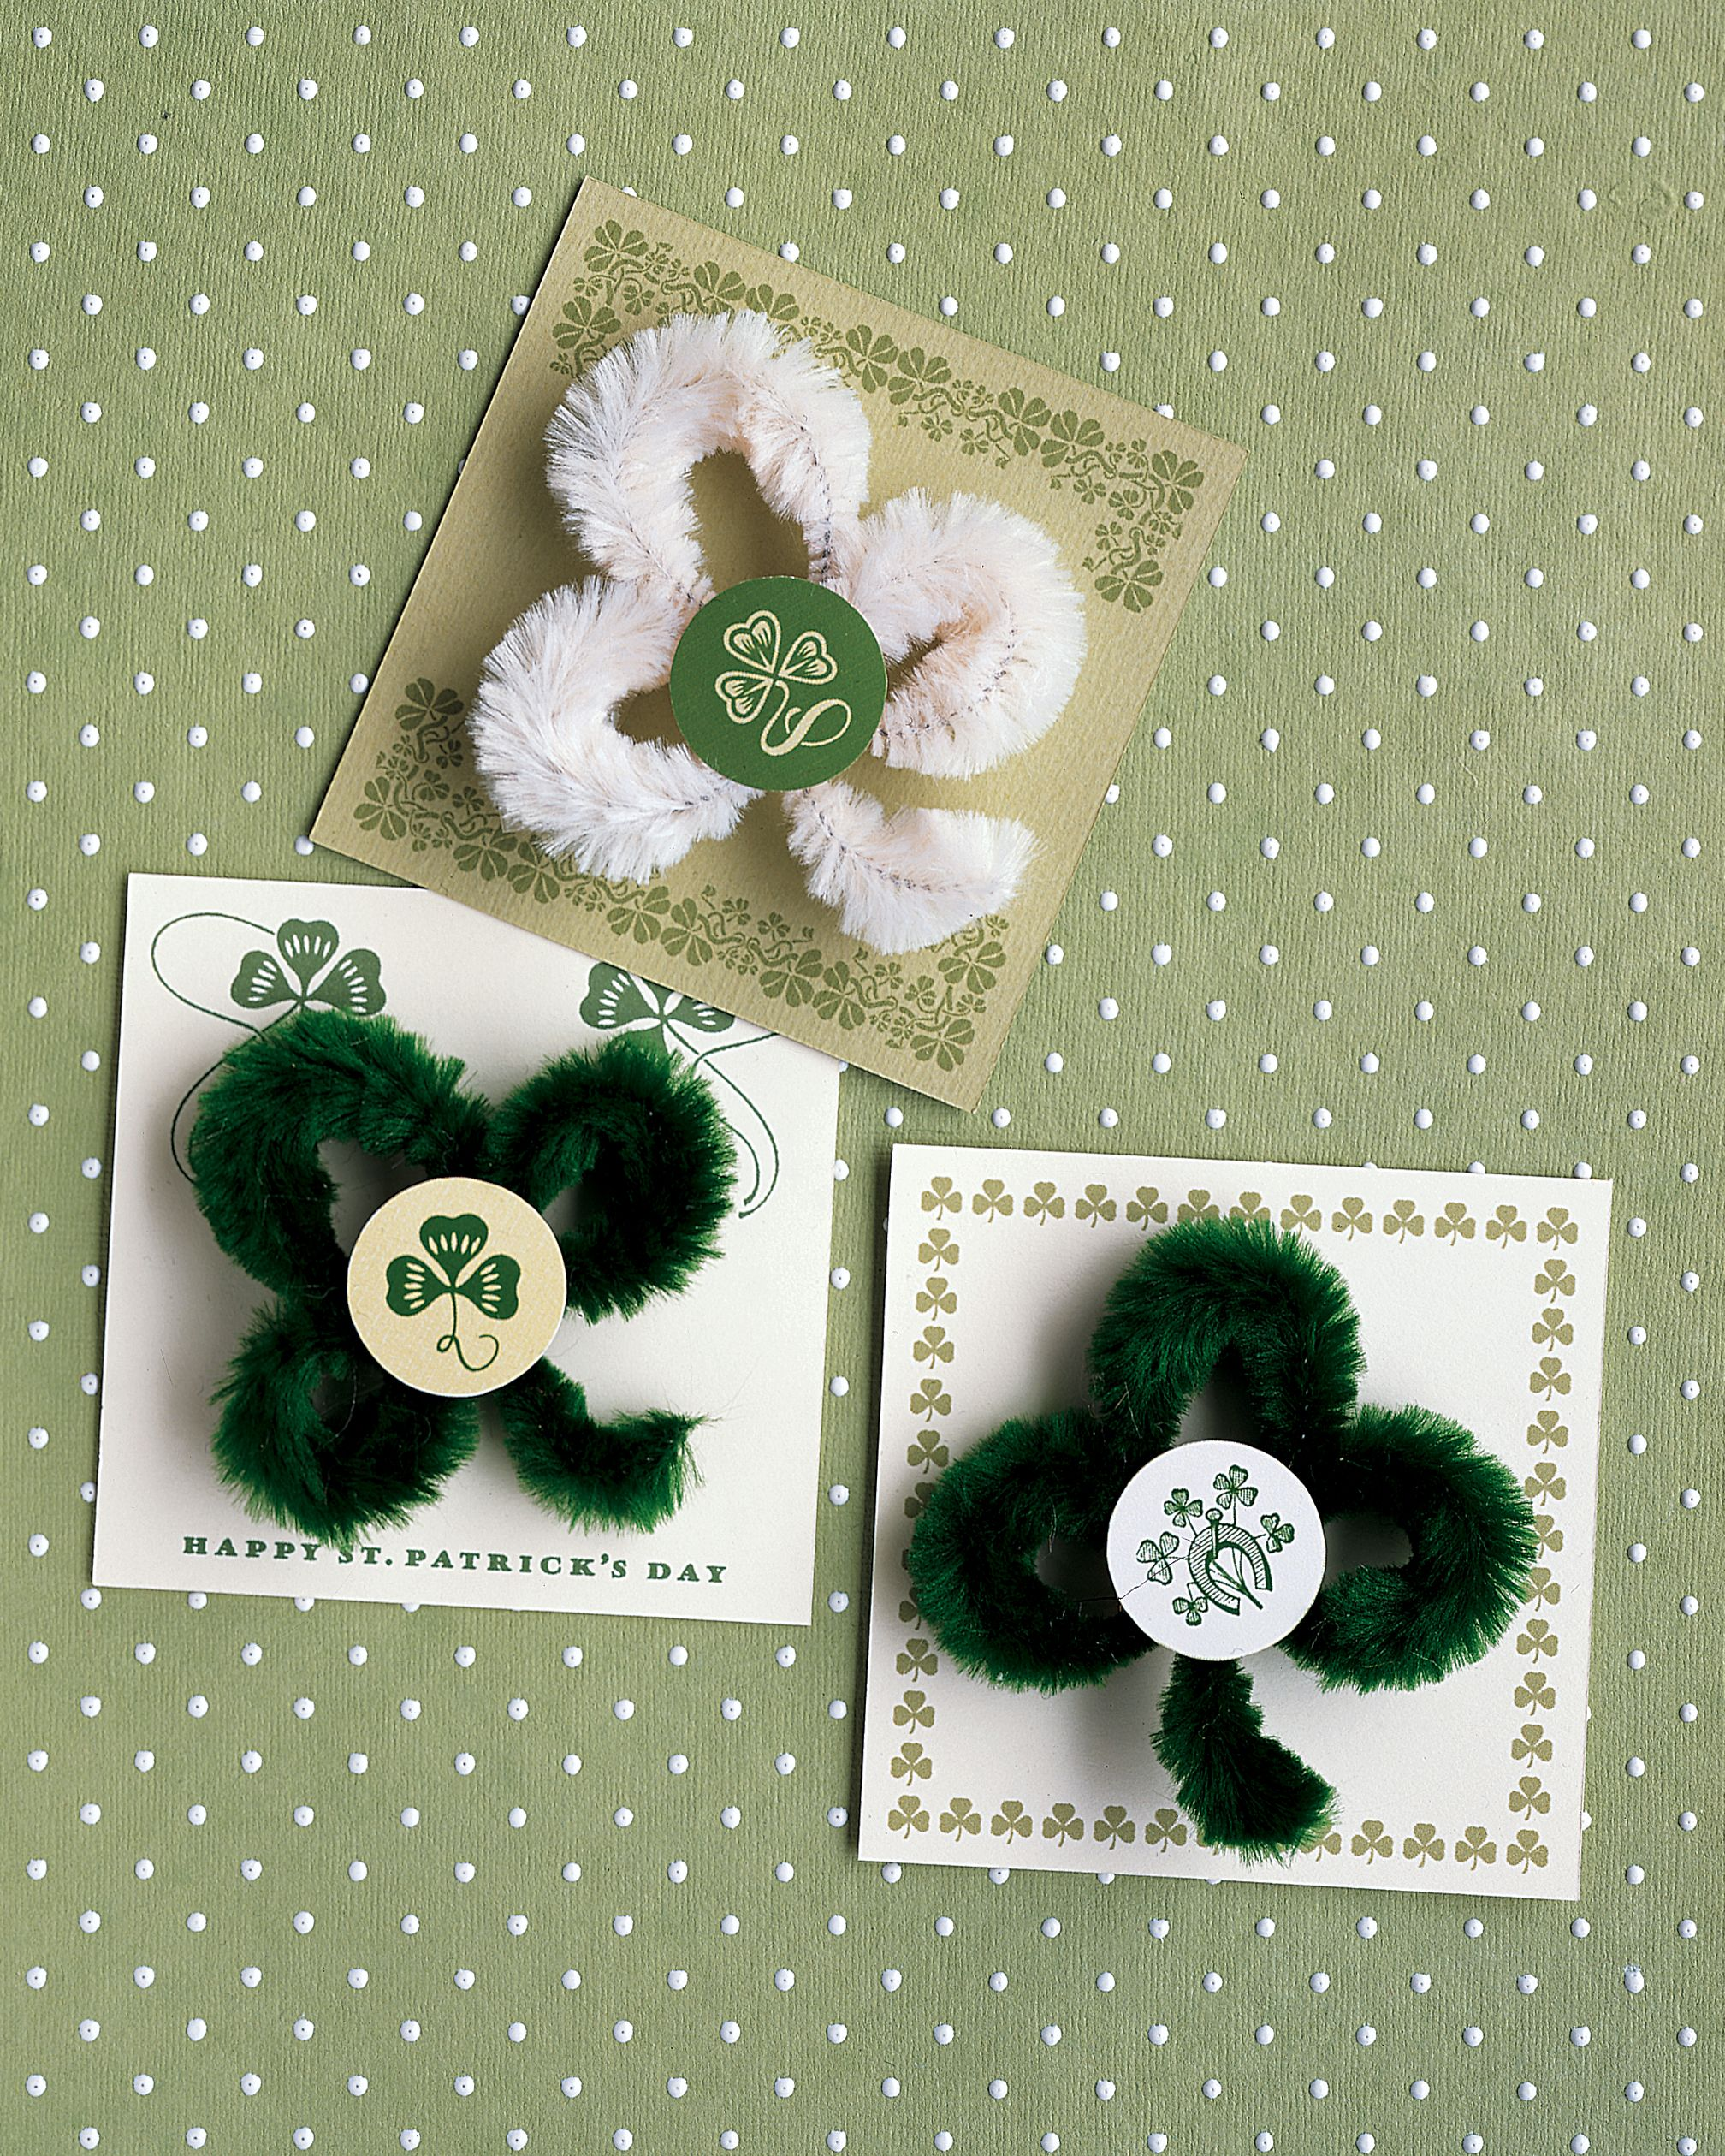 St. Patrick's Day Crafts and Decorations | Martha Stewart - Celebrate St. Patrick's Day with our favorite shamrock-inspired crafts, great for all the little leprechauns in your life. #stpatrick #goodluck #spring